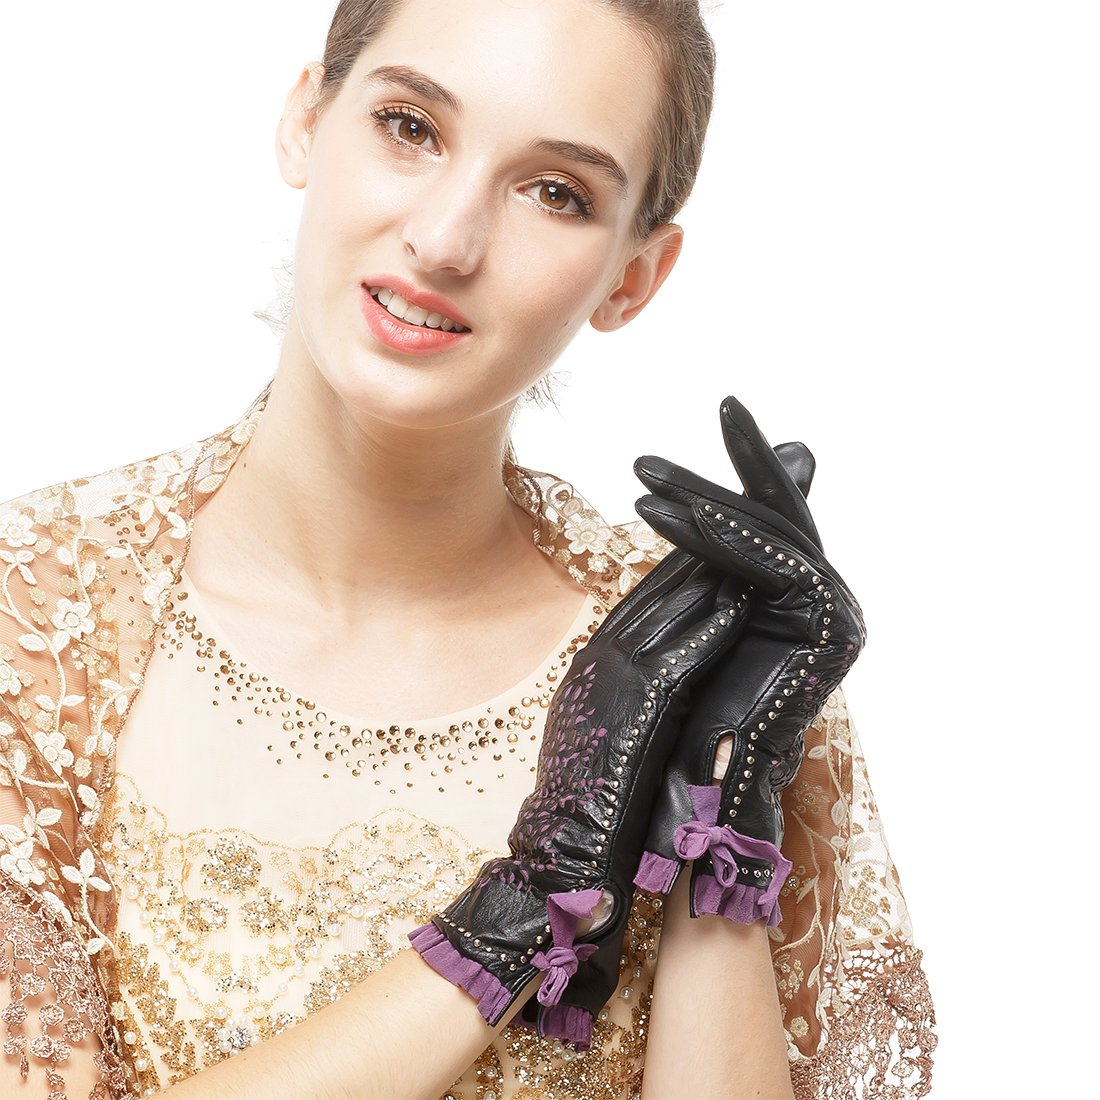 Nappaglo Women's Genuine Nappa Leather Gloves Perforated Winter Warm Short Gloves with Purple Lace (S (Palm Girth:6.5''-7''), Black (Non-Touchscreen)) by Nappaglo (Image #2)